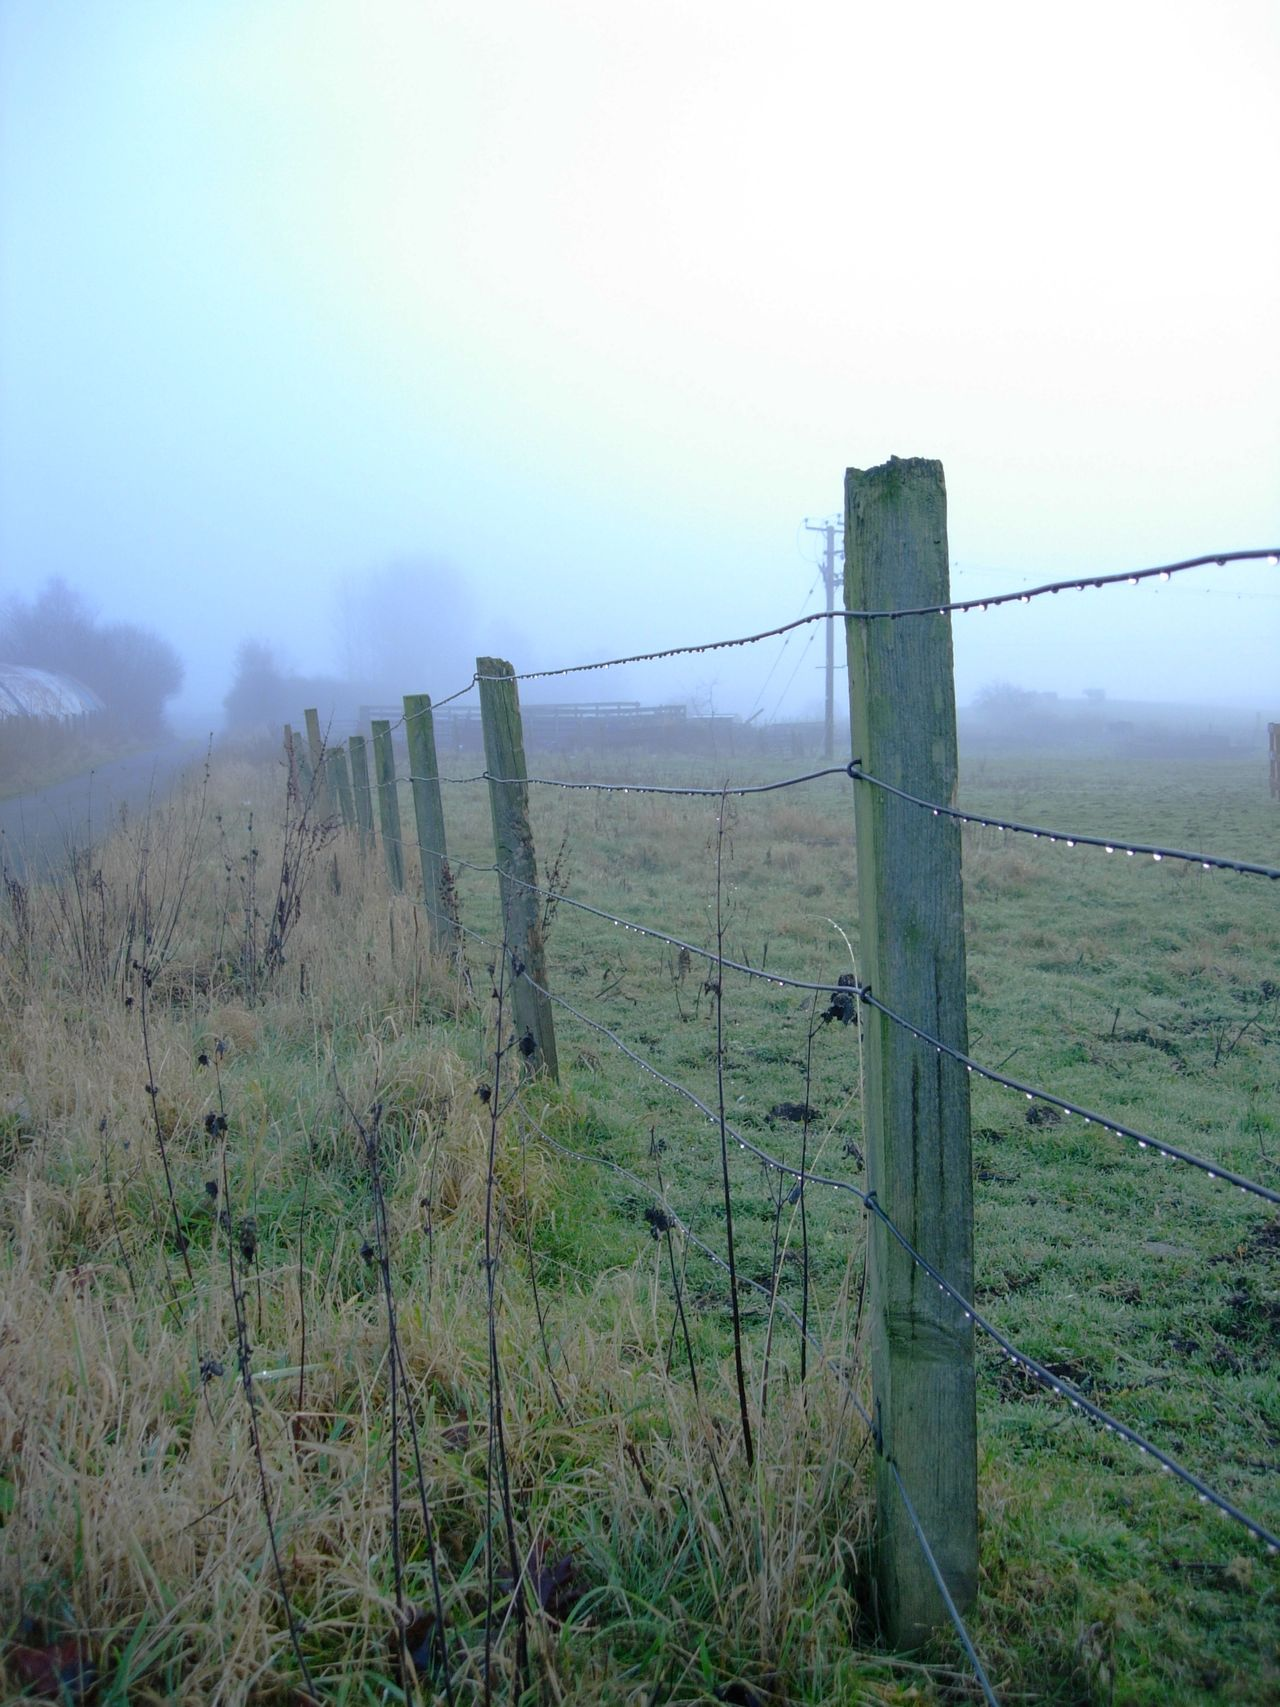 Barbed Wire Boundary Day Fence Foggy Grass Landscape Misty Nature No People Outdoors Protection Razor Wire Safety Security Sky Tranquility Unknown Journey